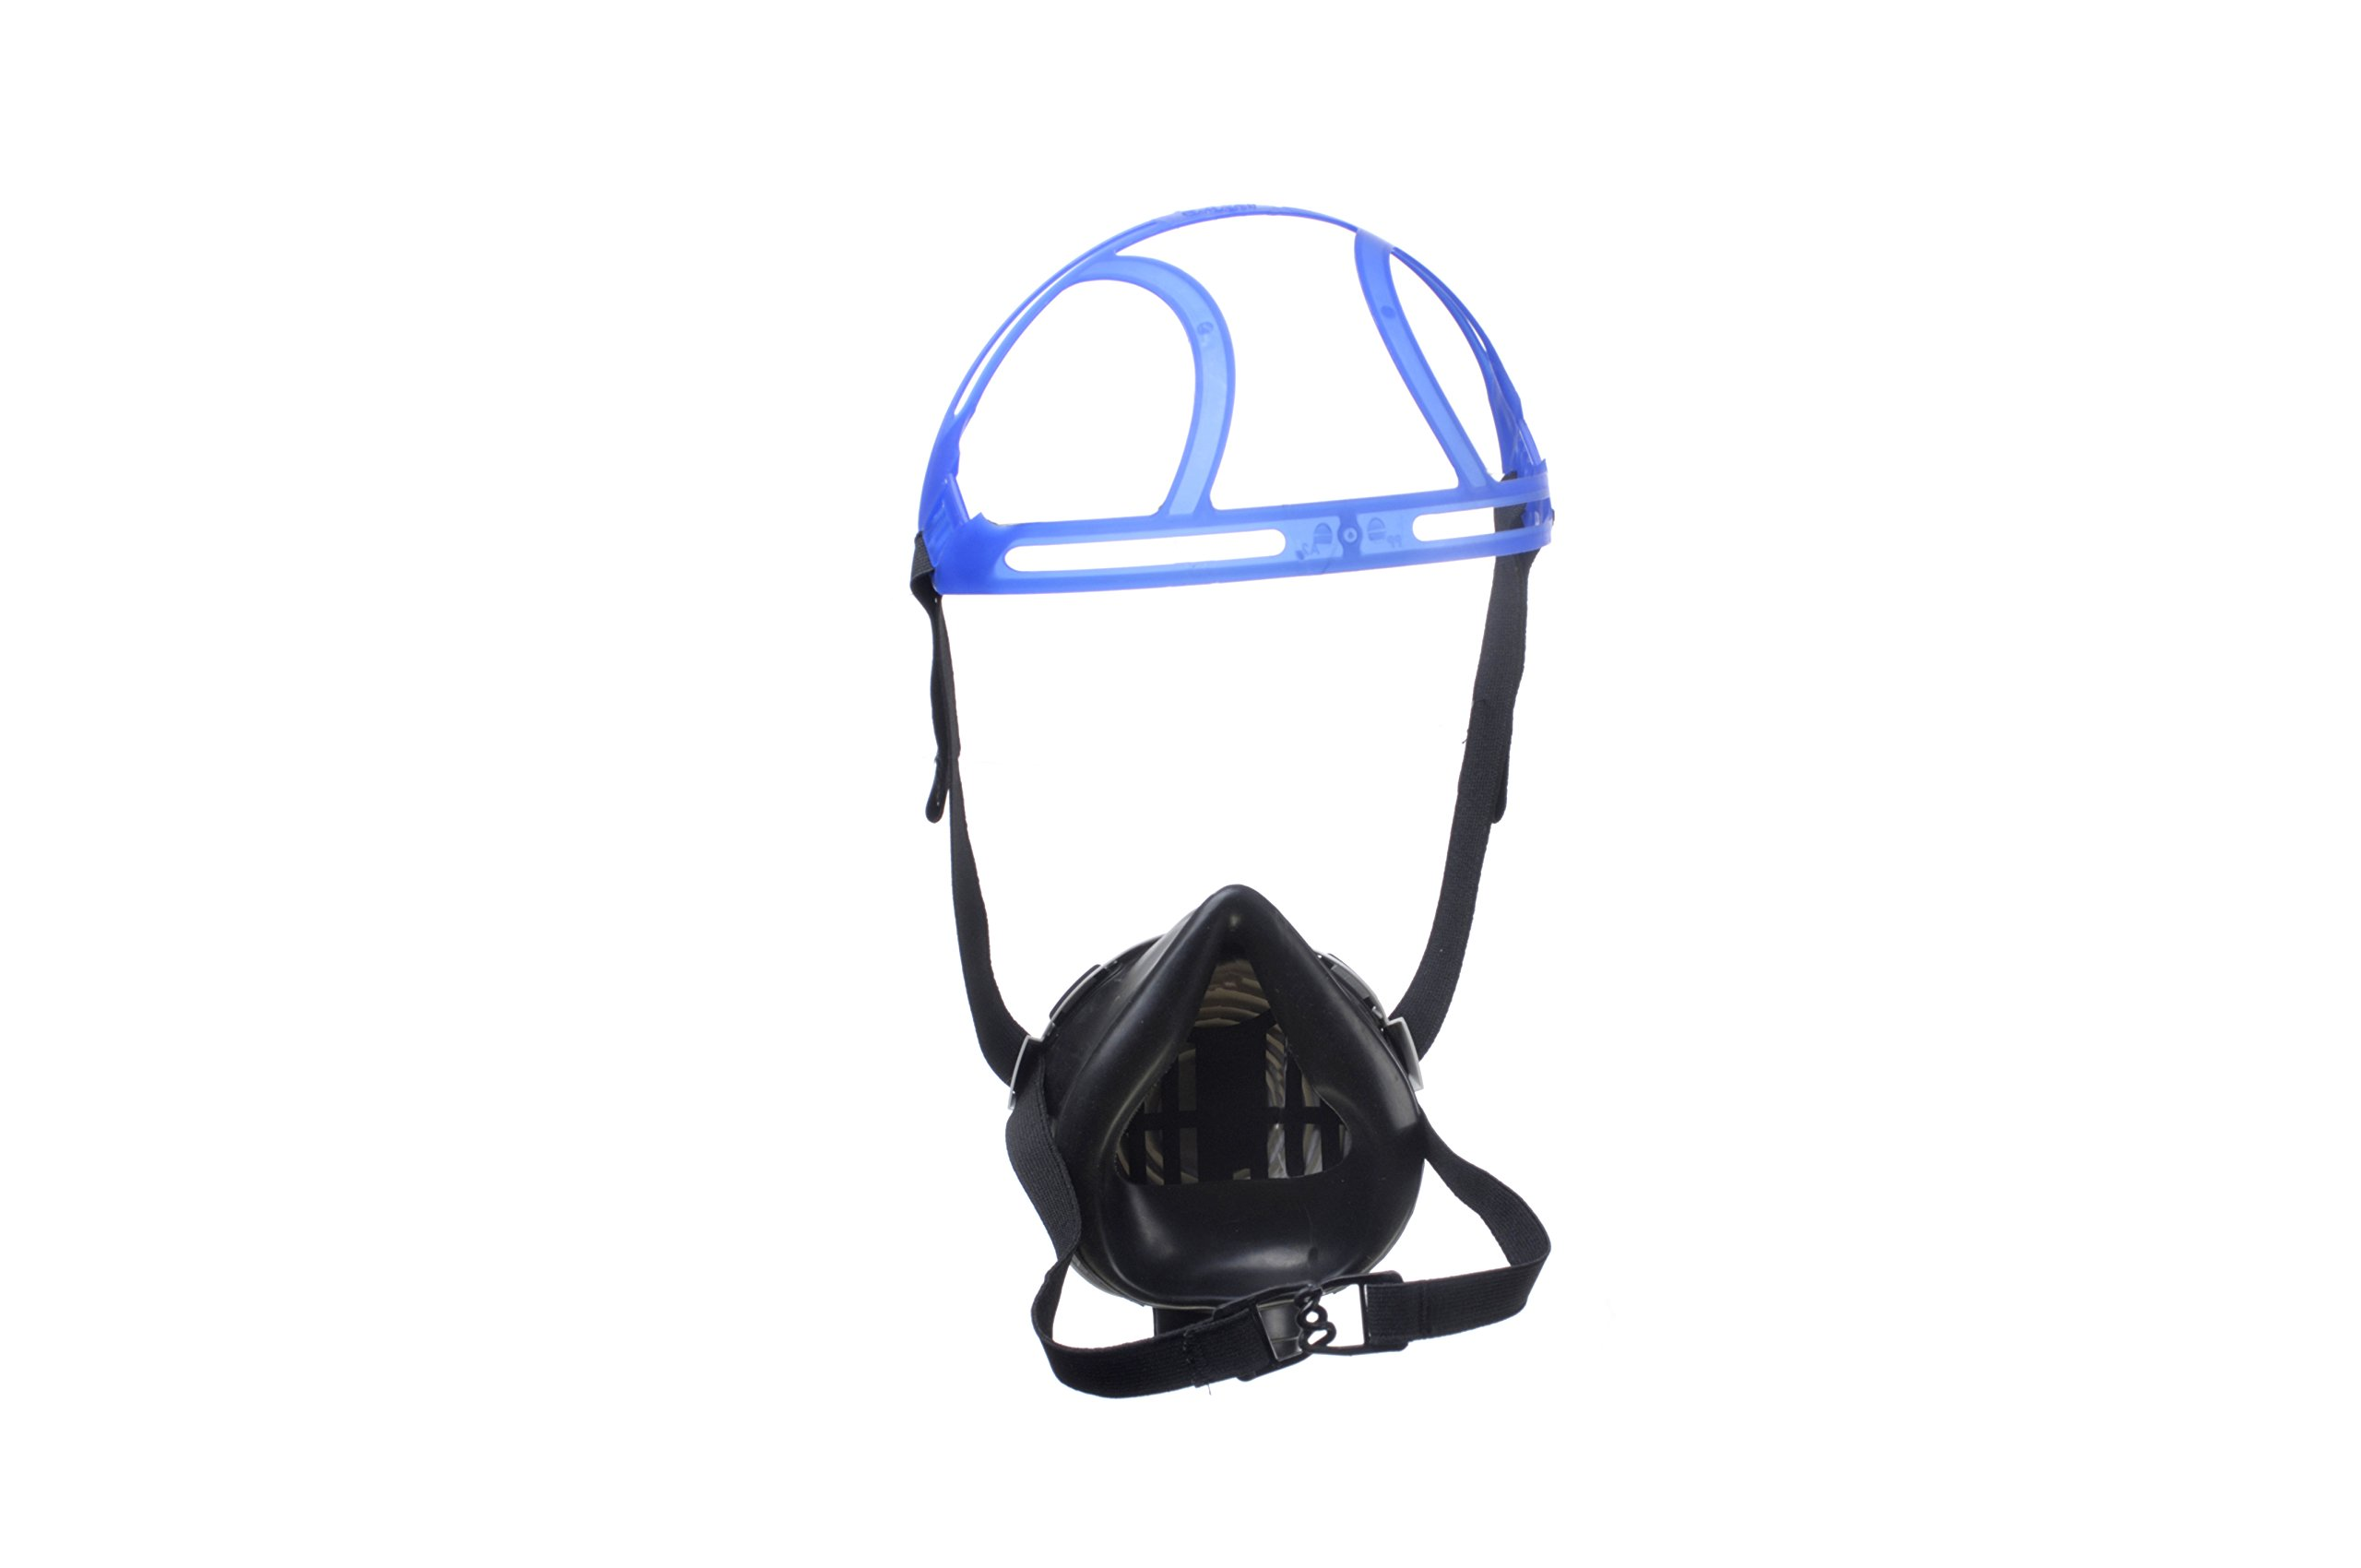 Dräger X-plore 2100 EPDM Half Mask with 5 Particle Filters P100 | One Size Fits Most | Silicone-Free NIOSH-Approved Reusable Respirator Mask by Dräger (Image #4)